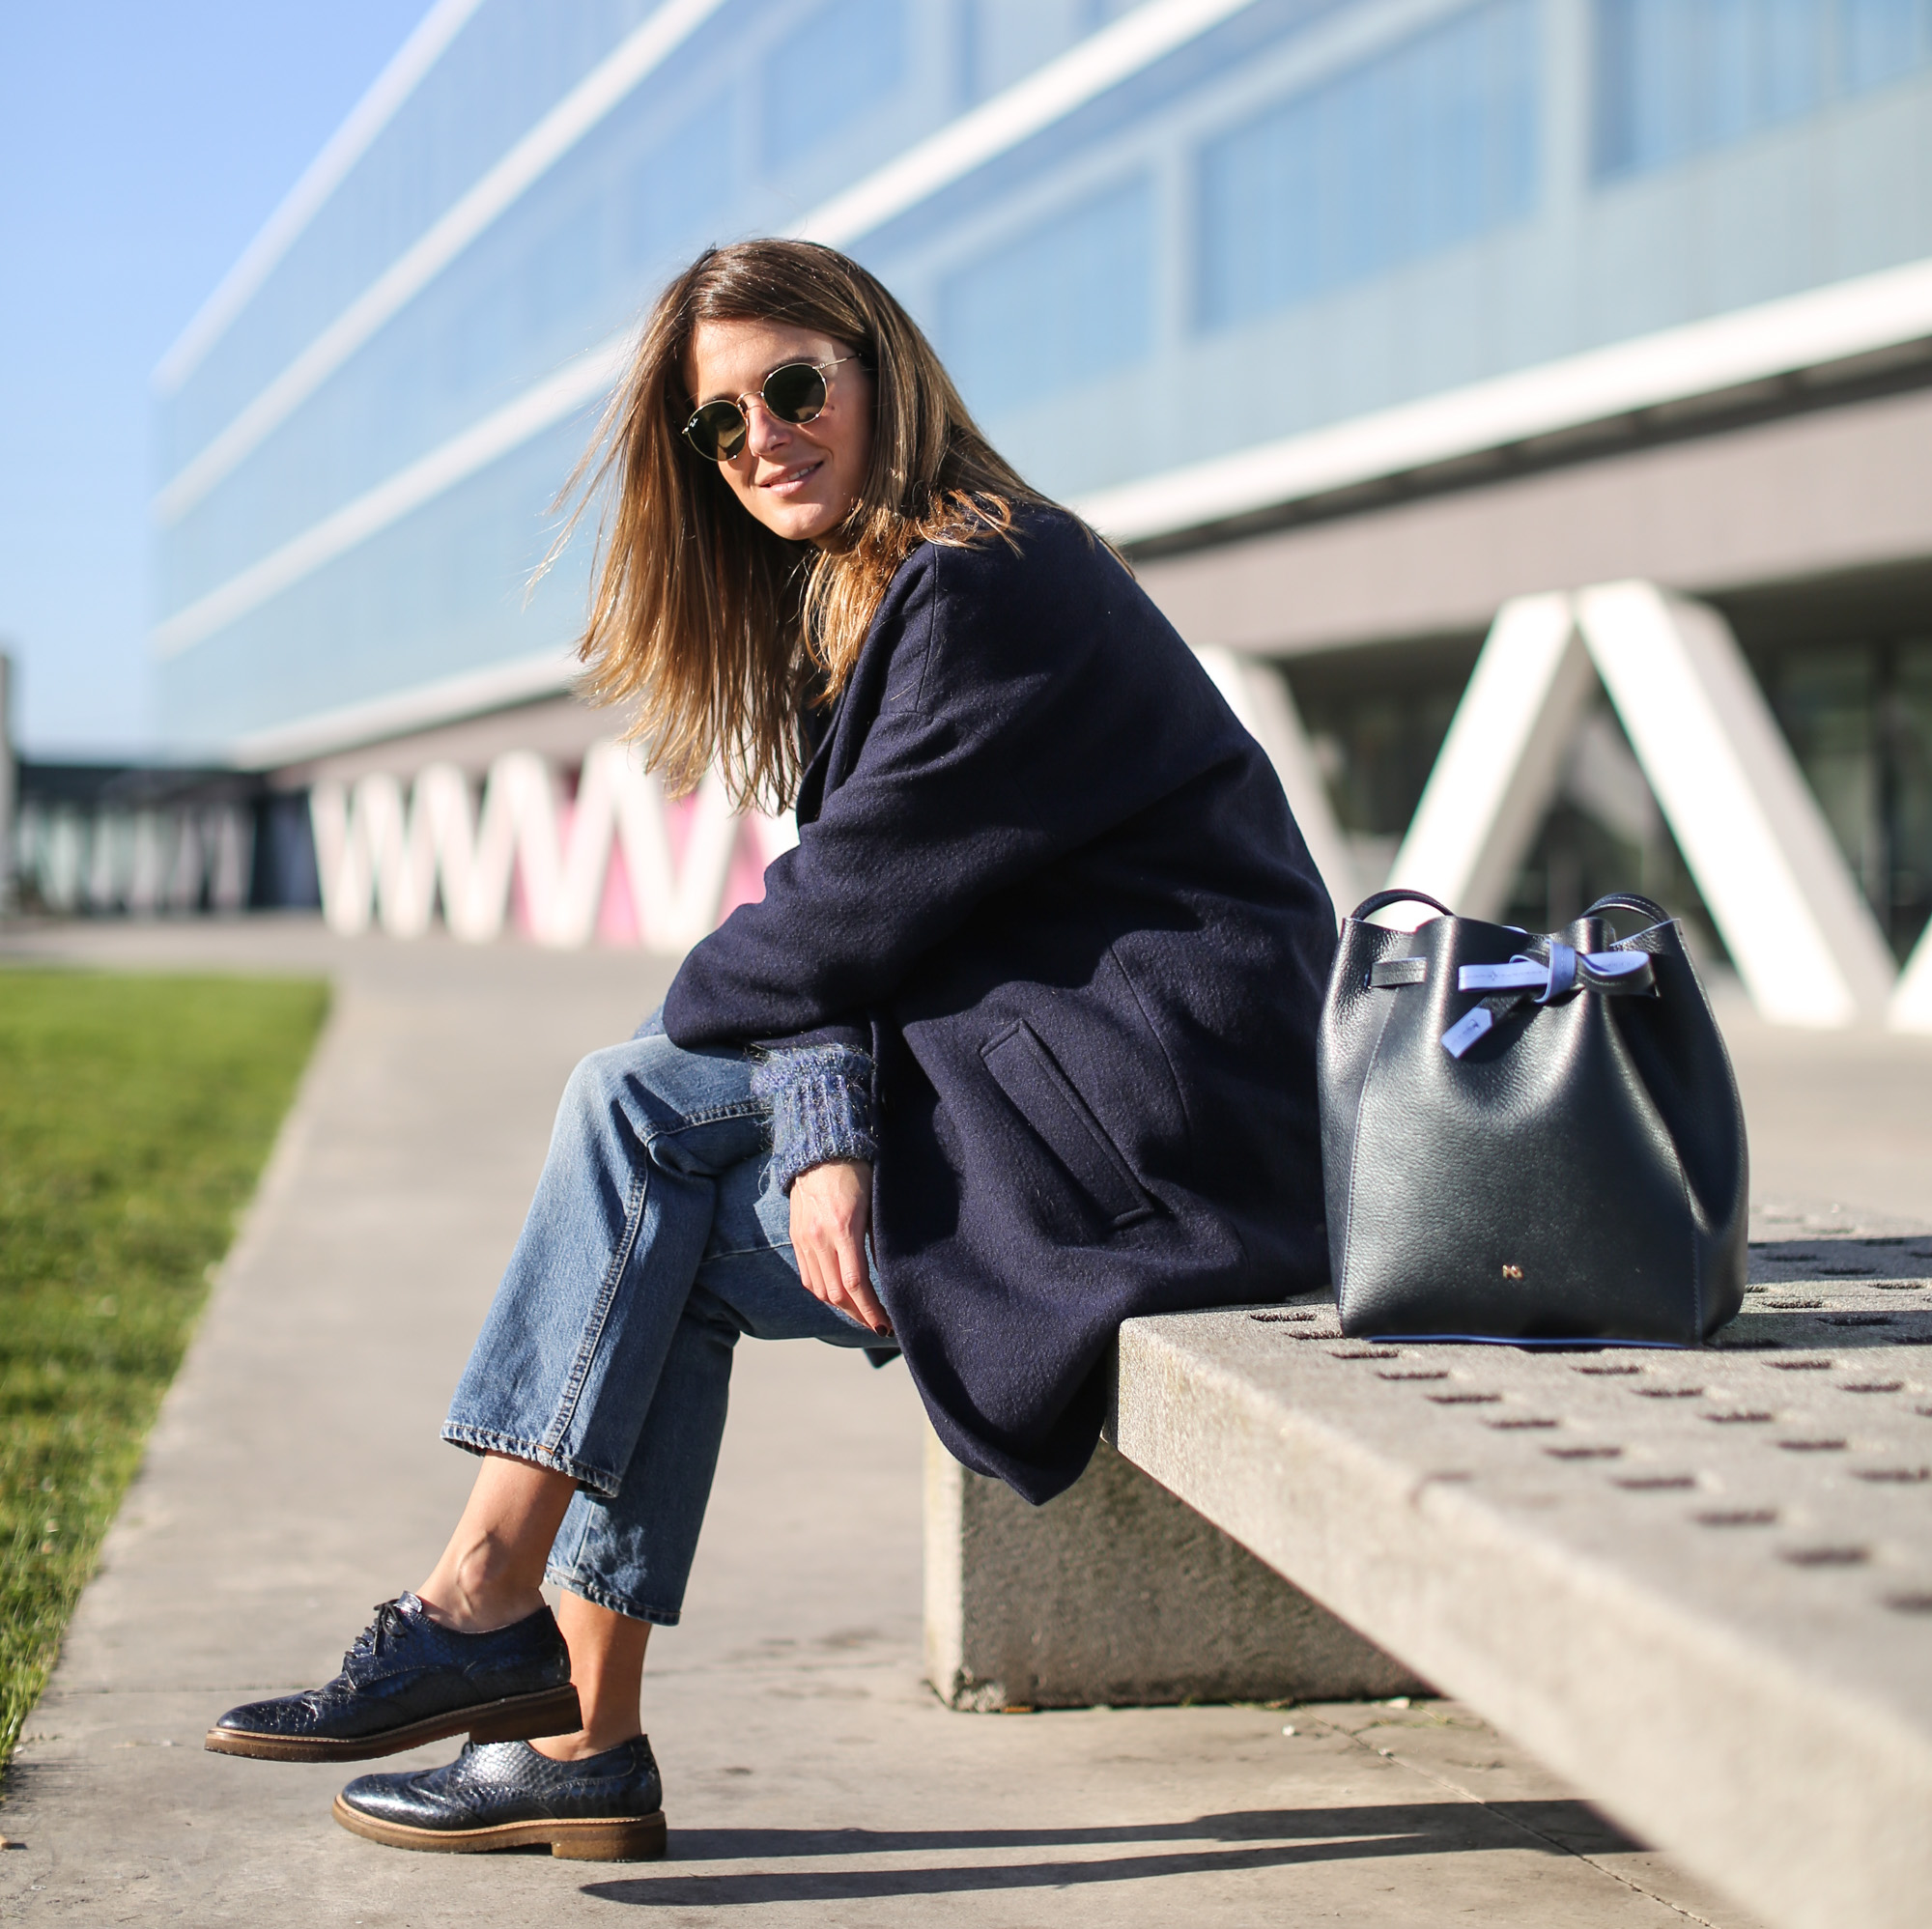 Clochet_streetstyle_masscob_navy_coat_trimmer_bilbao_acne_pop_jeans-18